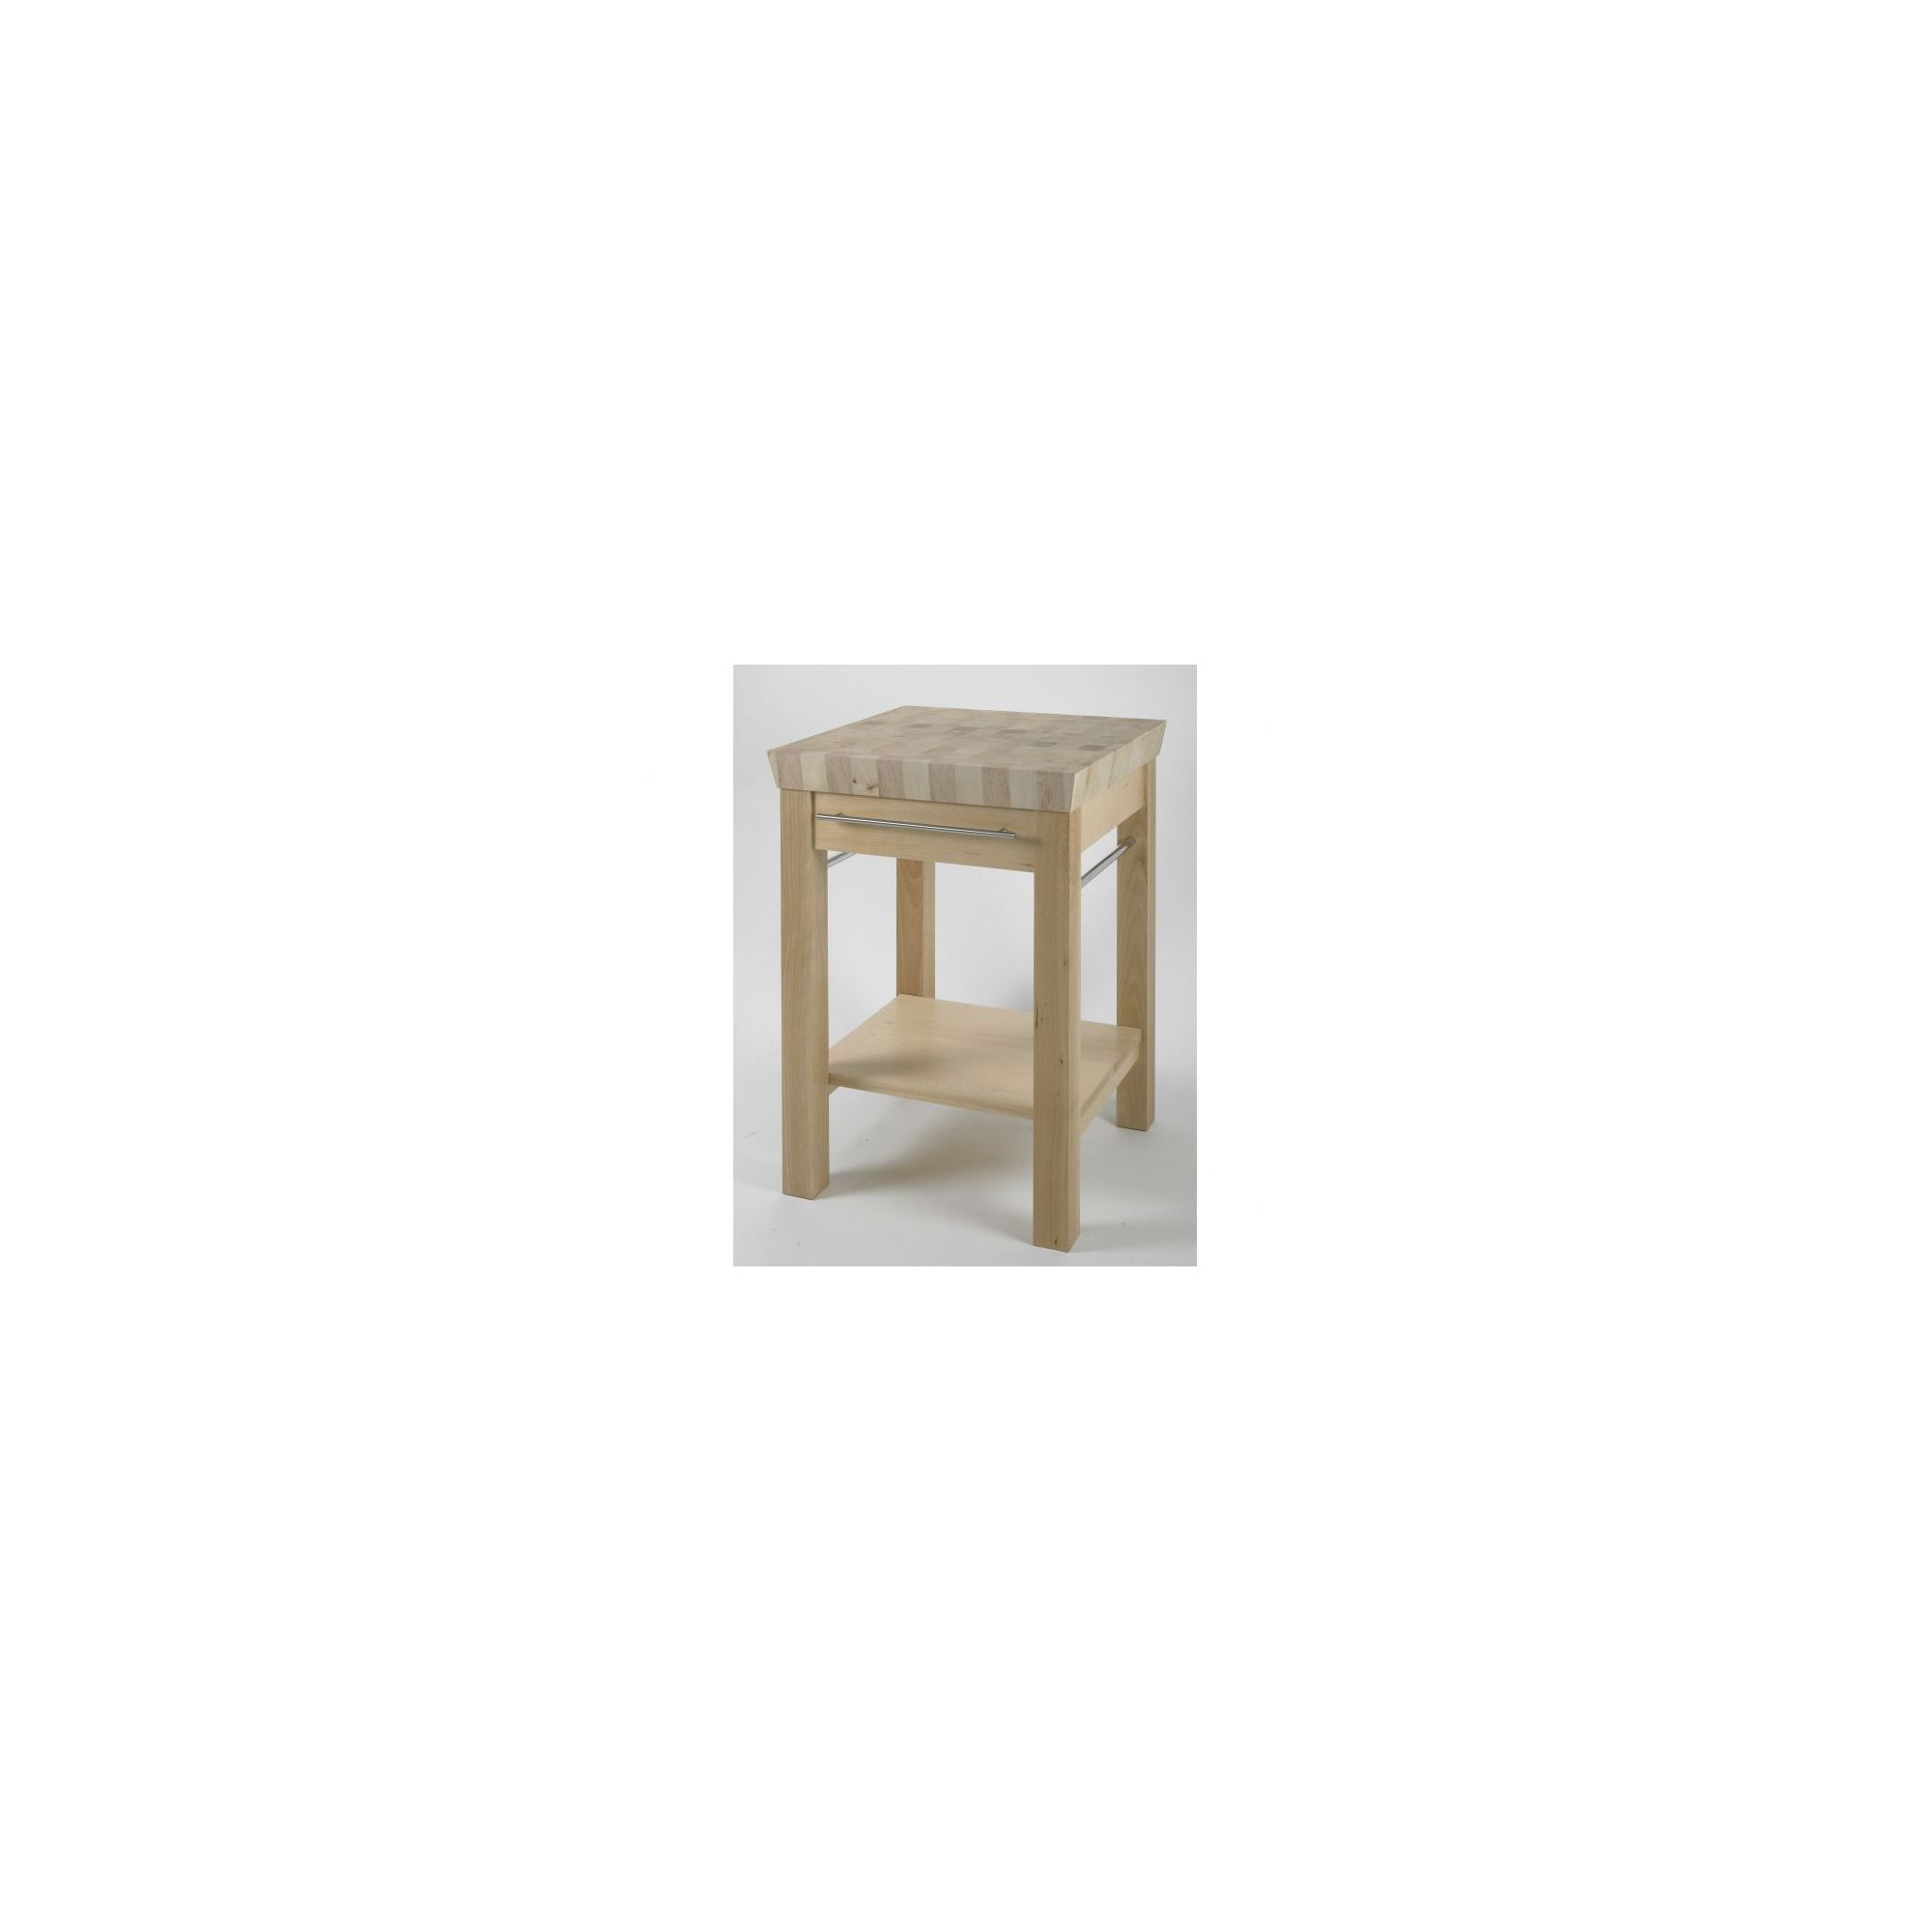 Chabret Occasional Furniture - 85cm X 60cm X 60cm at Tesco Direct